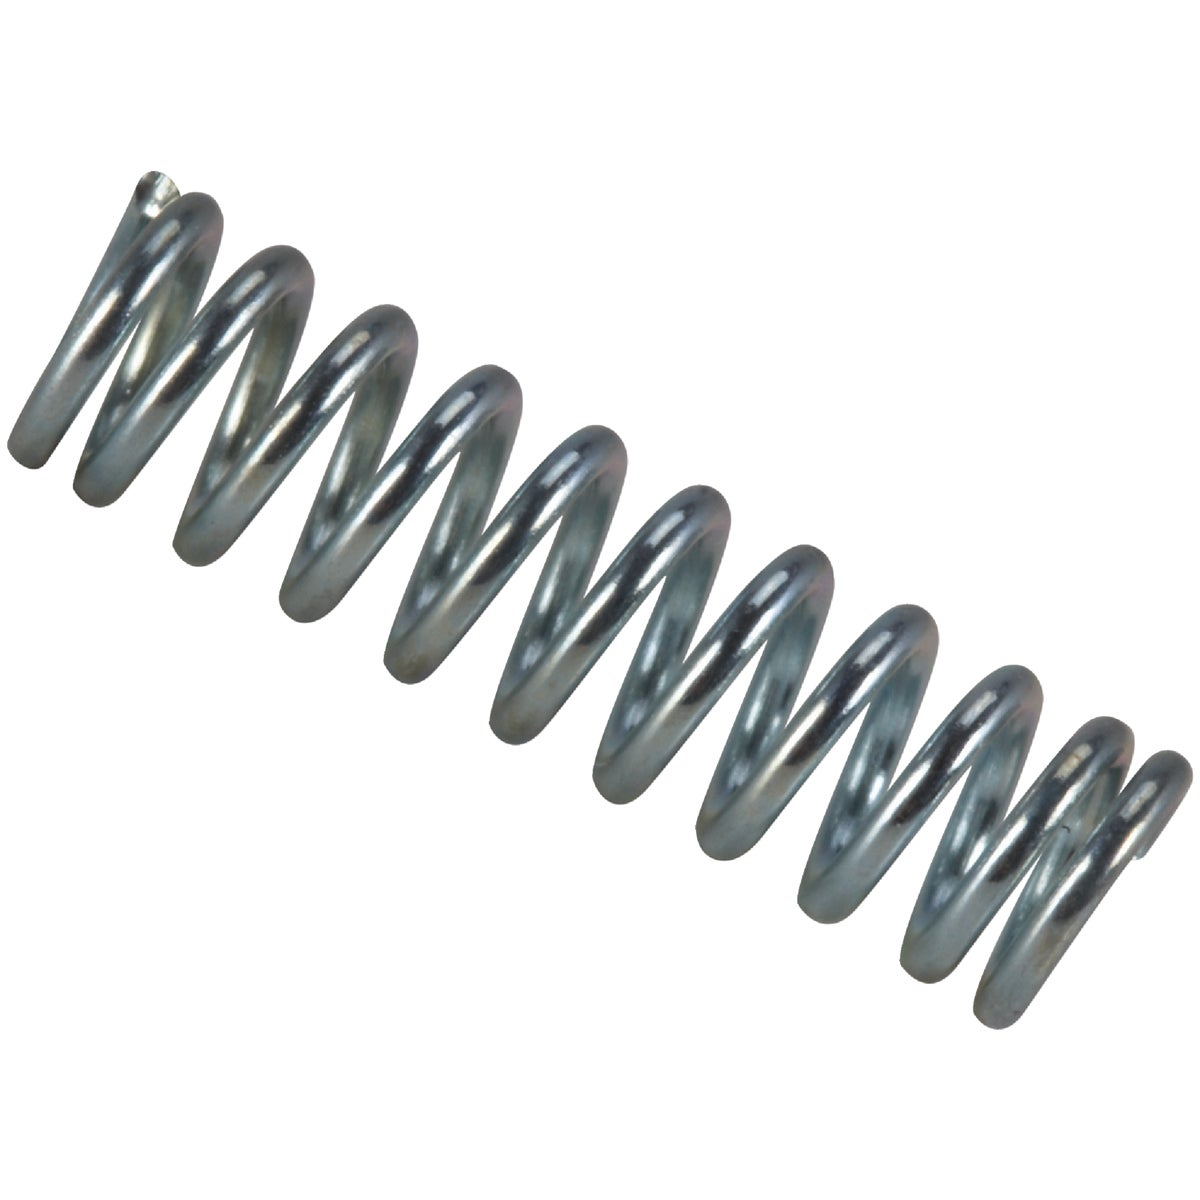 COMPRESSION SPRING - C-510 by Century Spring Corp